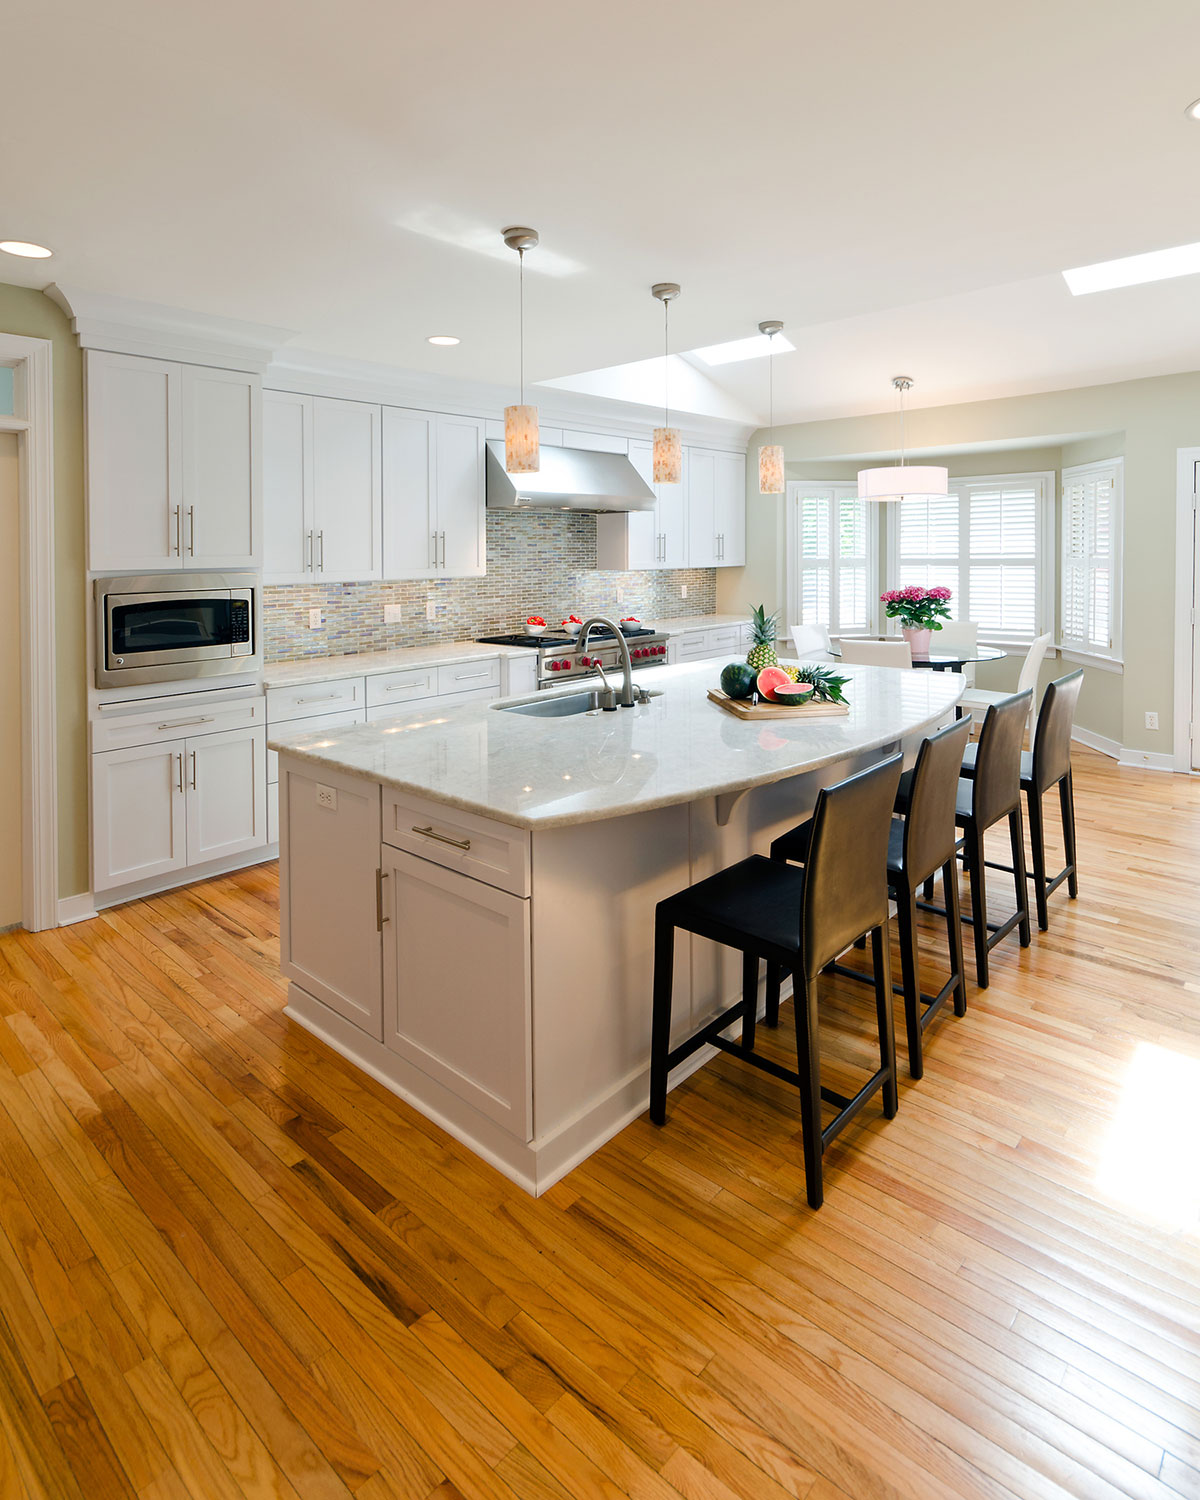 Contemporary kitchen with white pearl granite countertops